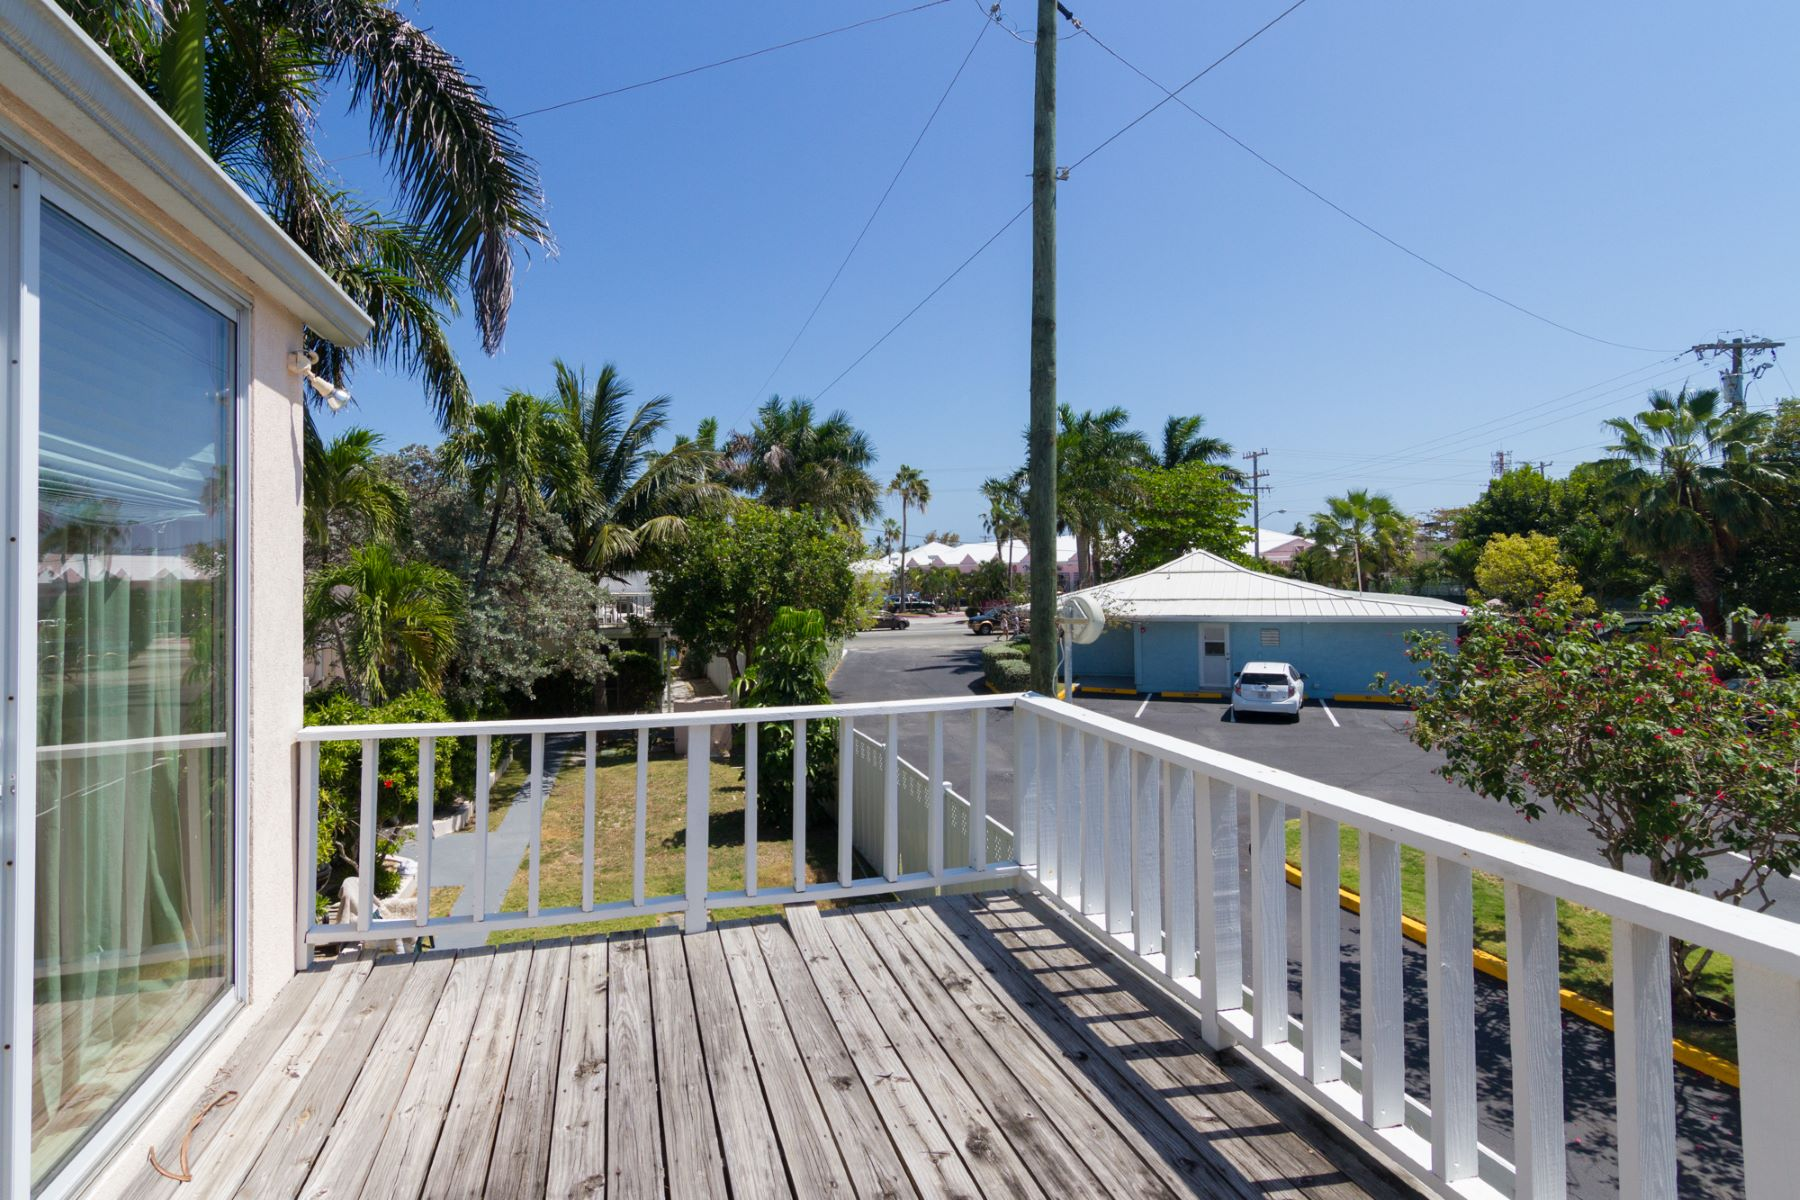 Additional photo for property listing at Island Pine Villas, Seven Mile Beach Seven Mile Beach, Gran Caimán Islas Caimán